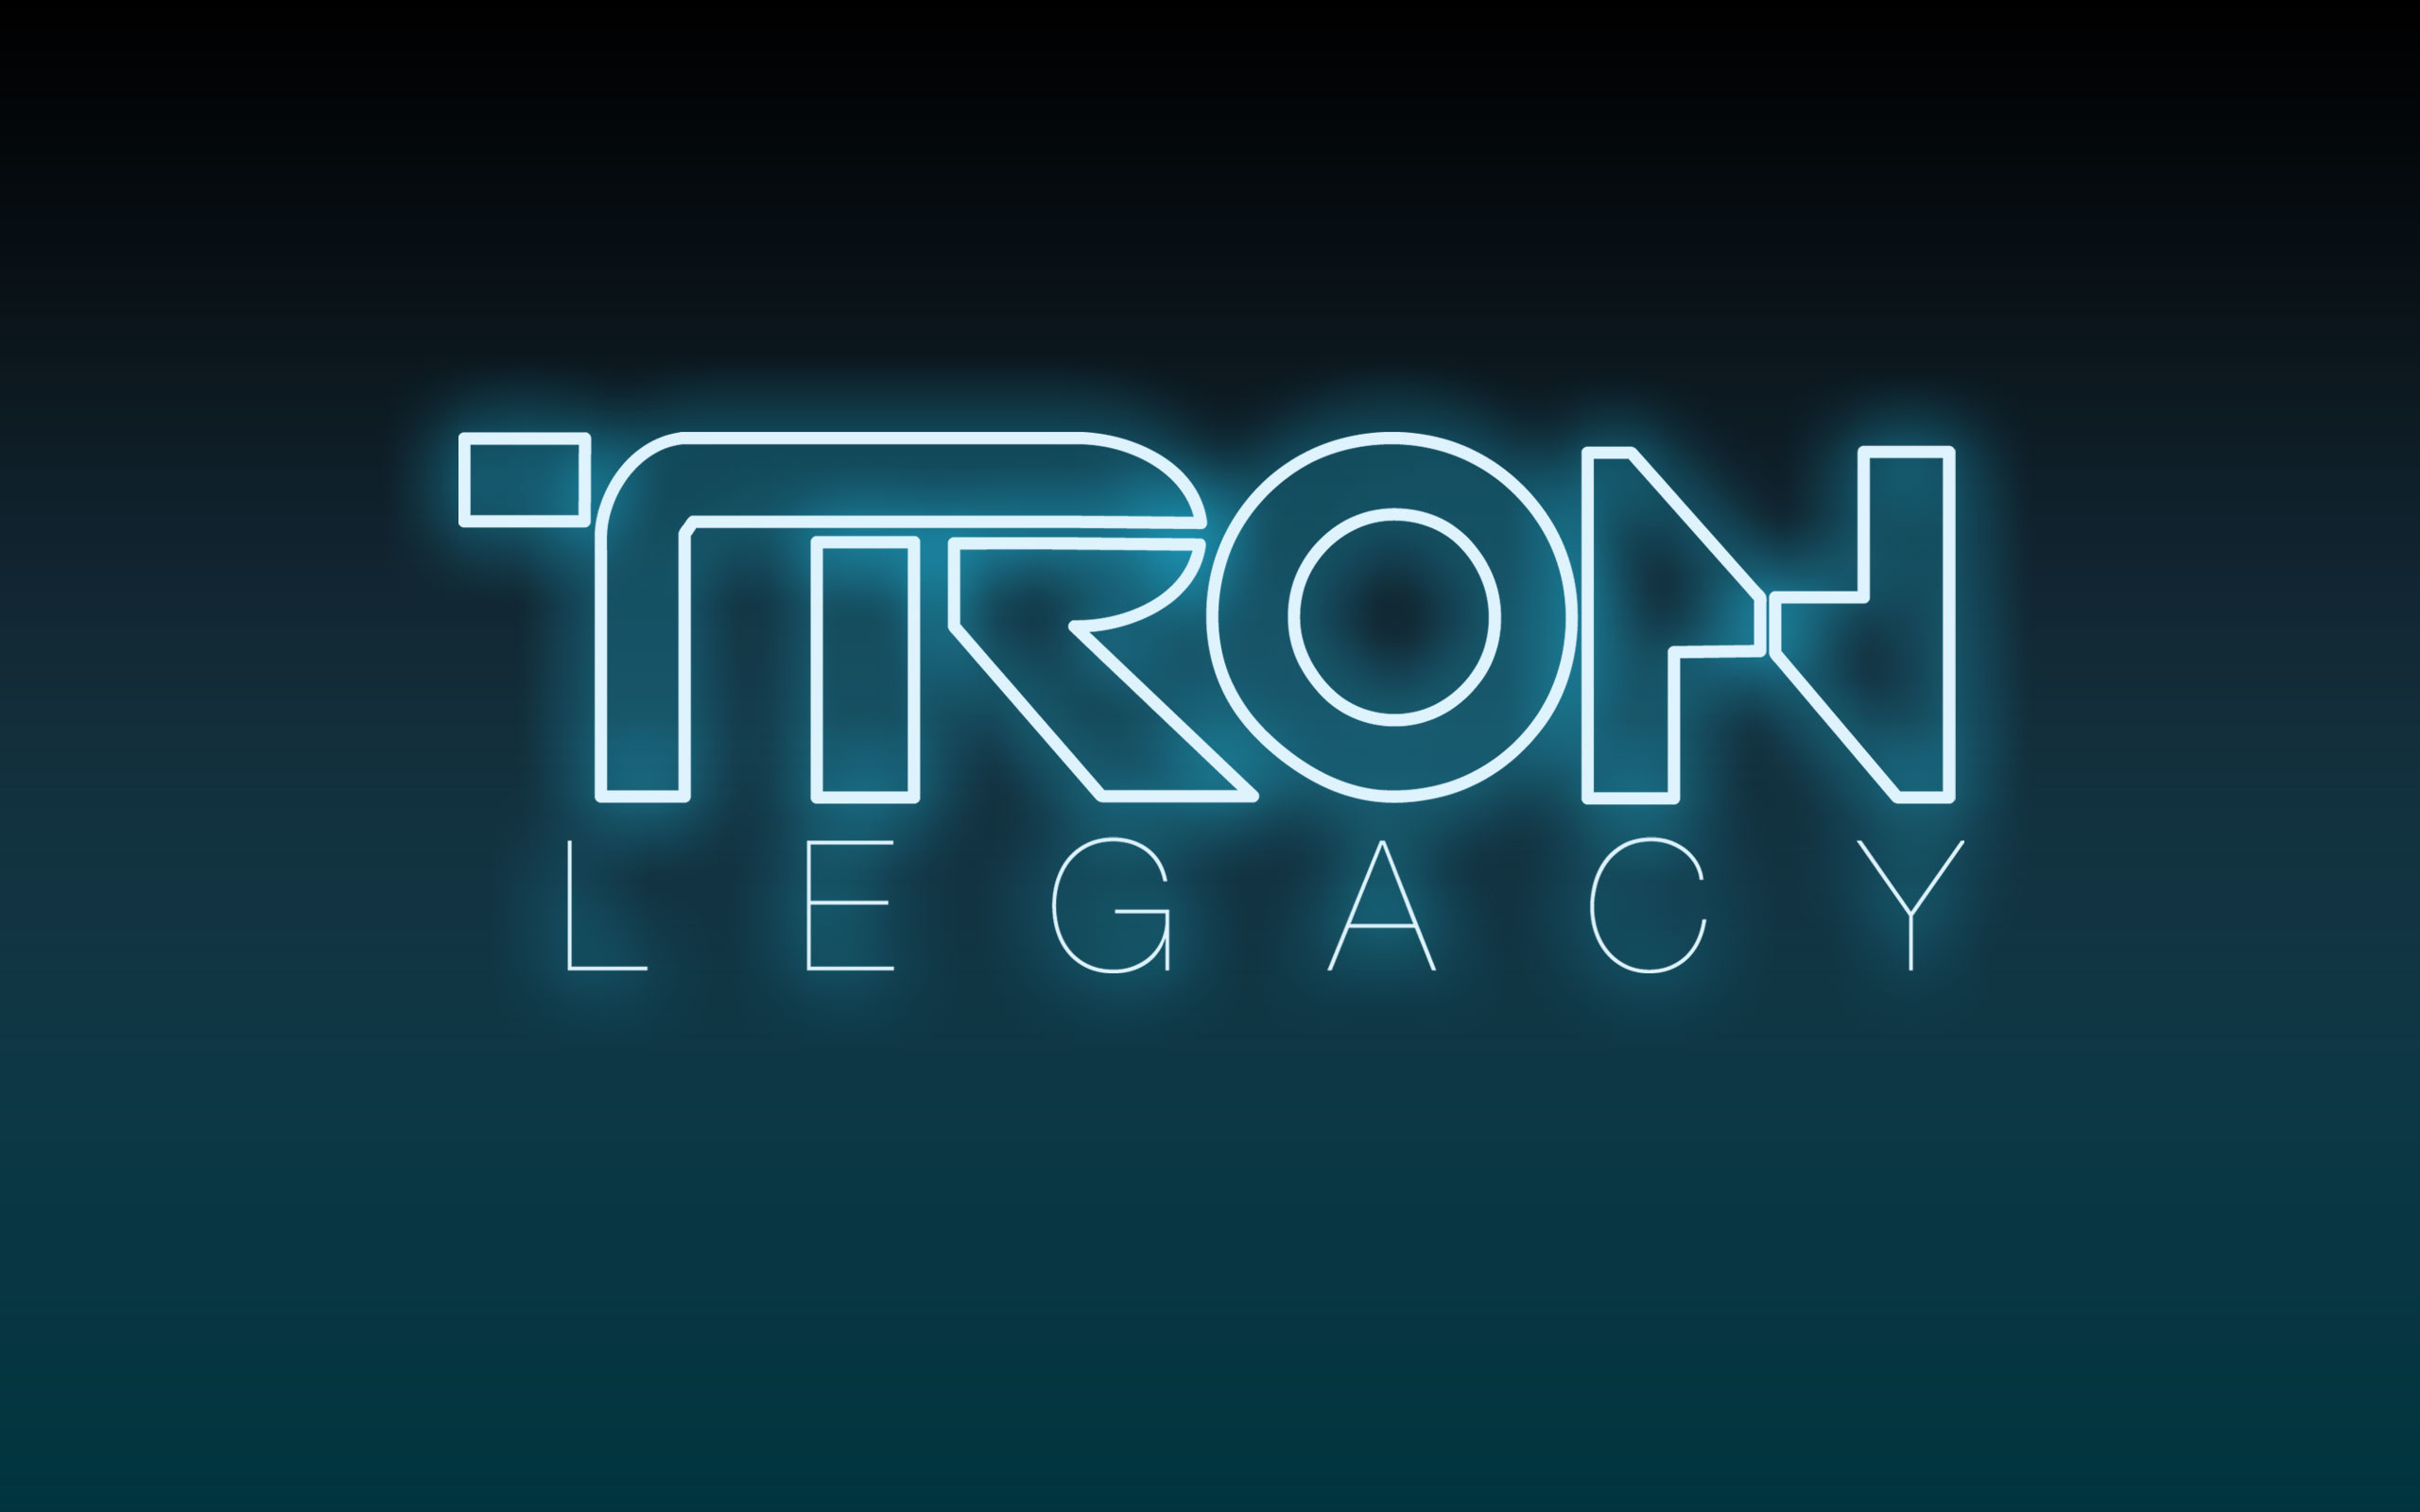 Disney's Tron: Legacy Movie Logo wallpaper – Click picture for high  resolution HD wallpaper